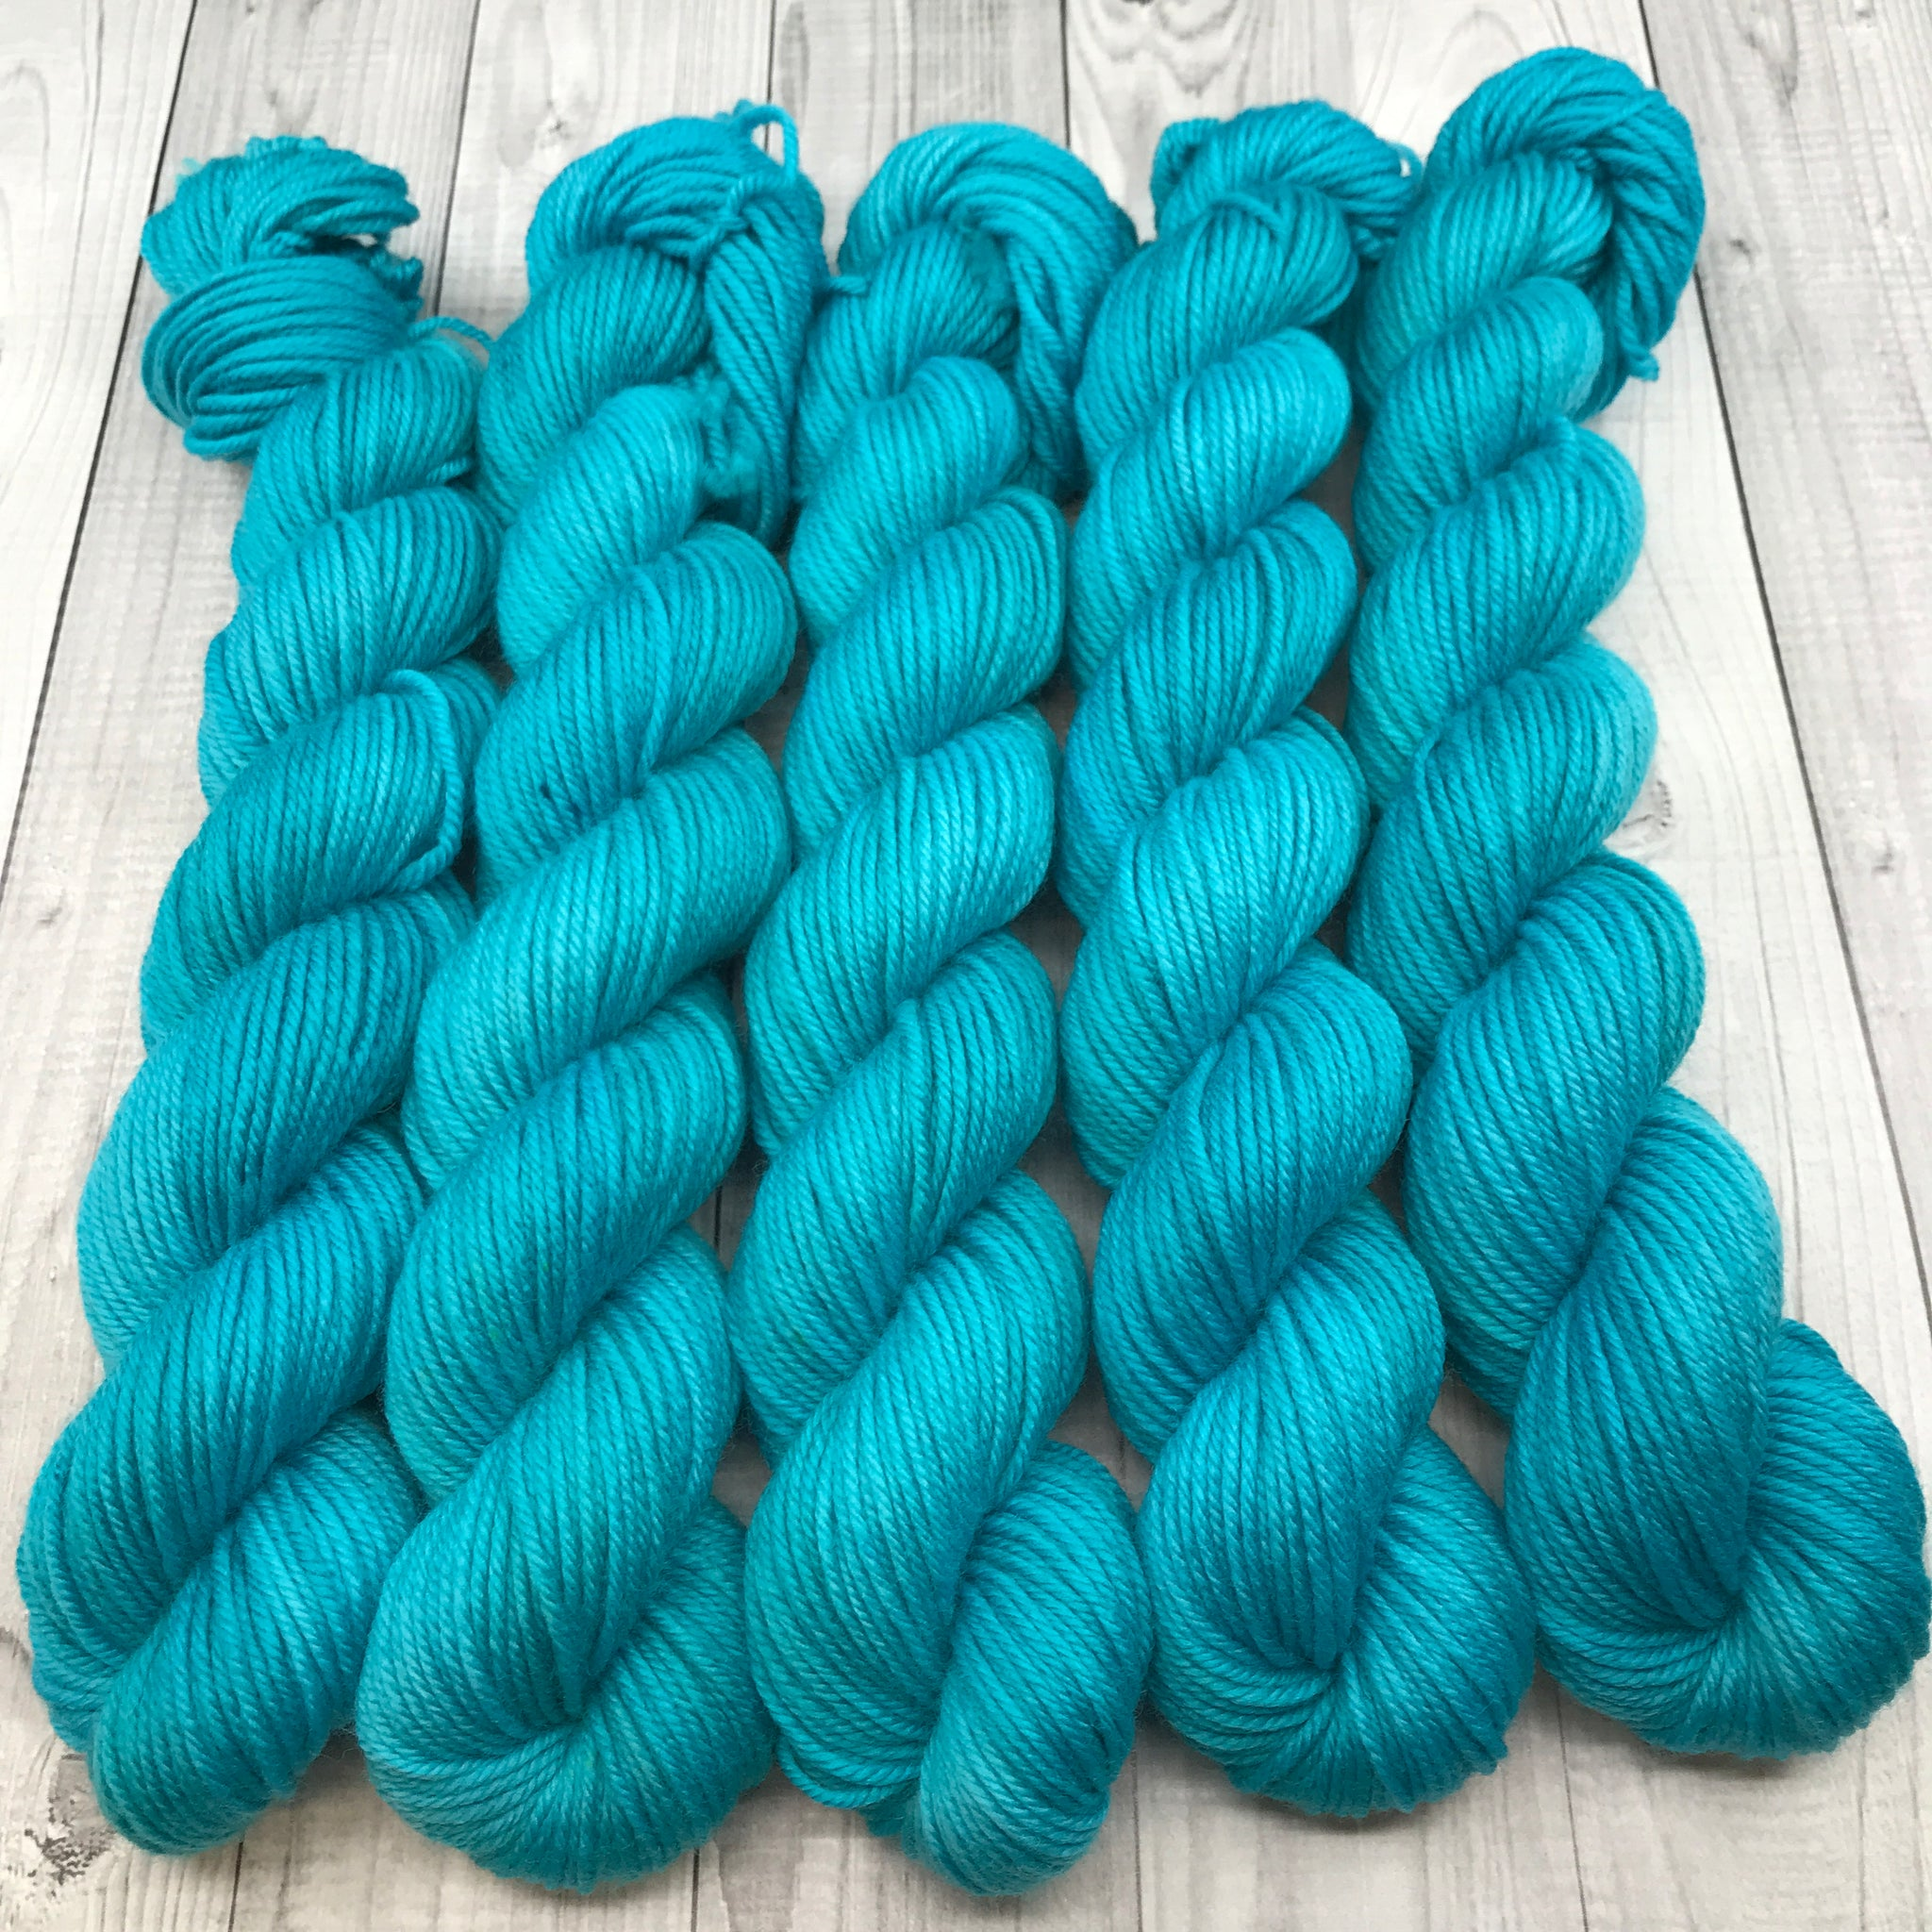 Trevor Morgan DK - Mini Skein- Tempting Teal